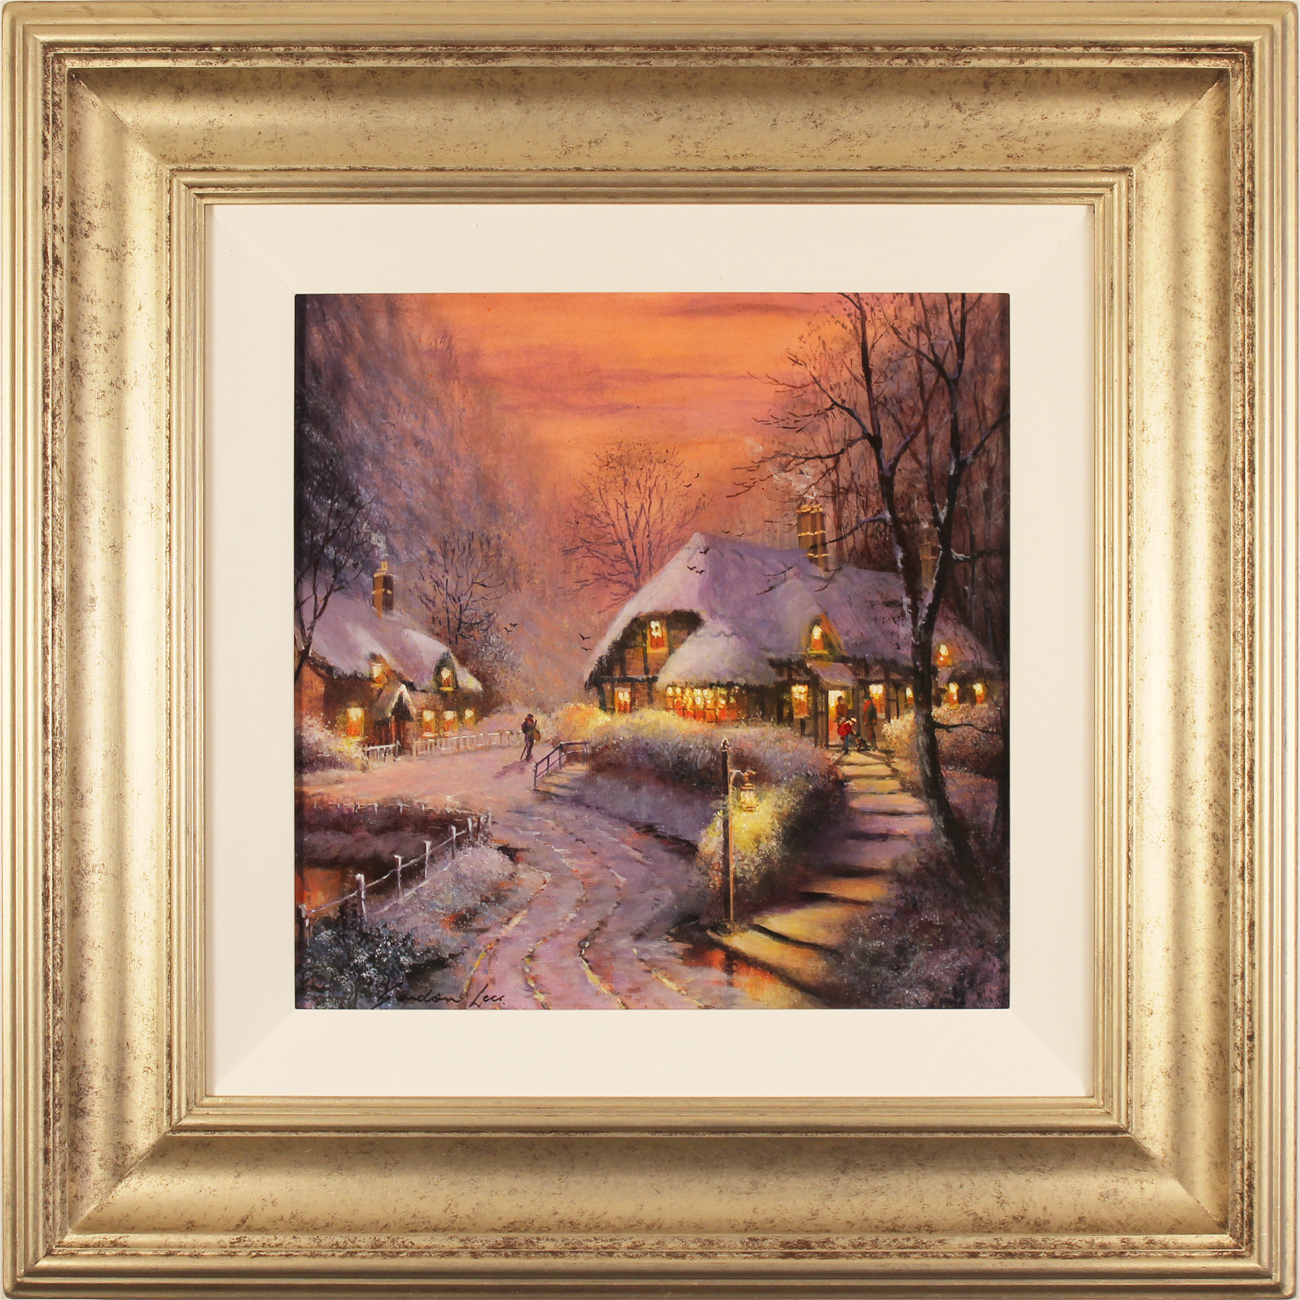 Gordon Lees, Original oil painting on panel, The Village Winter, click to enlarge